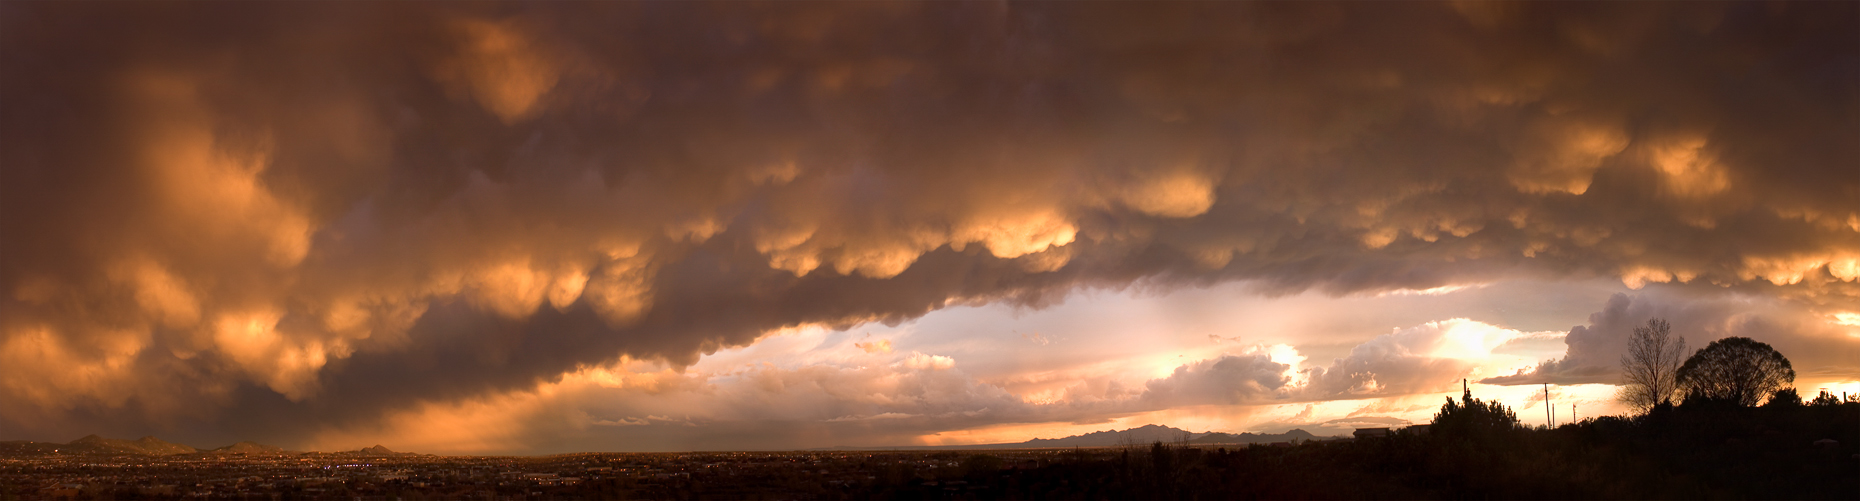 Panoramic of dramatic storm canopy of undelit clouds at sunset, Santa Fe New Mexico.